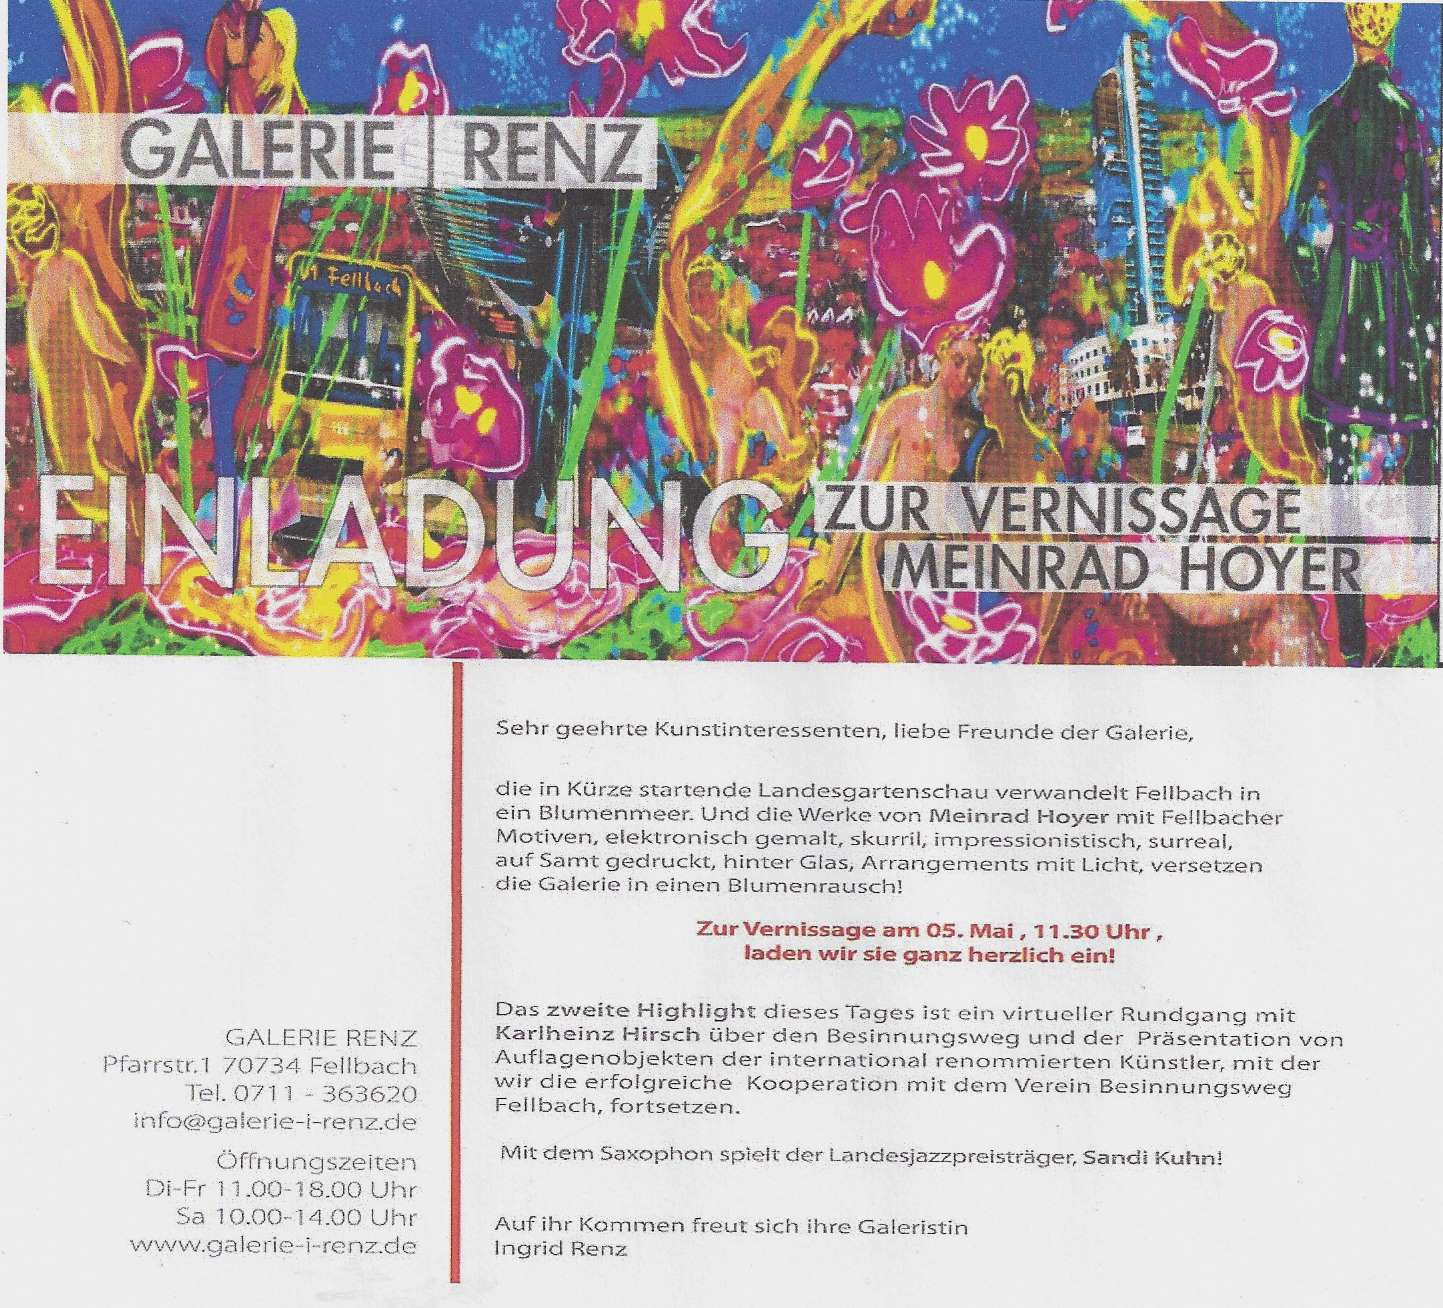 190505 Einladung Vernissage